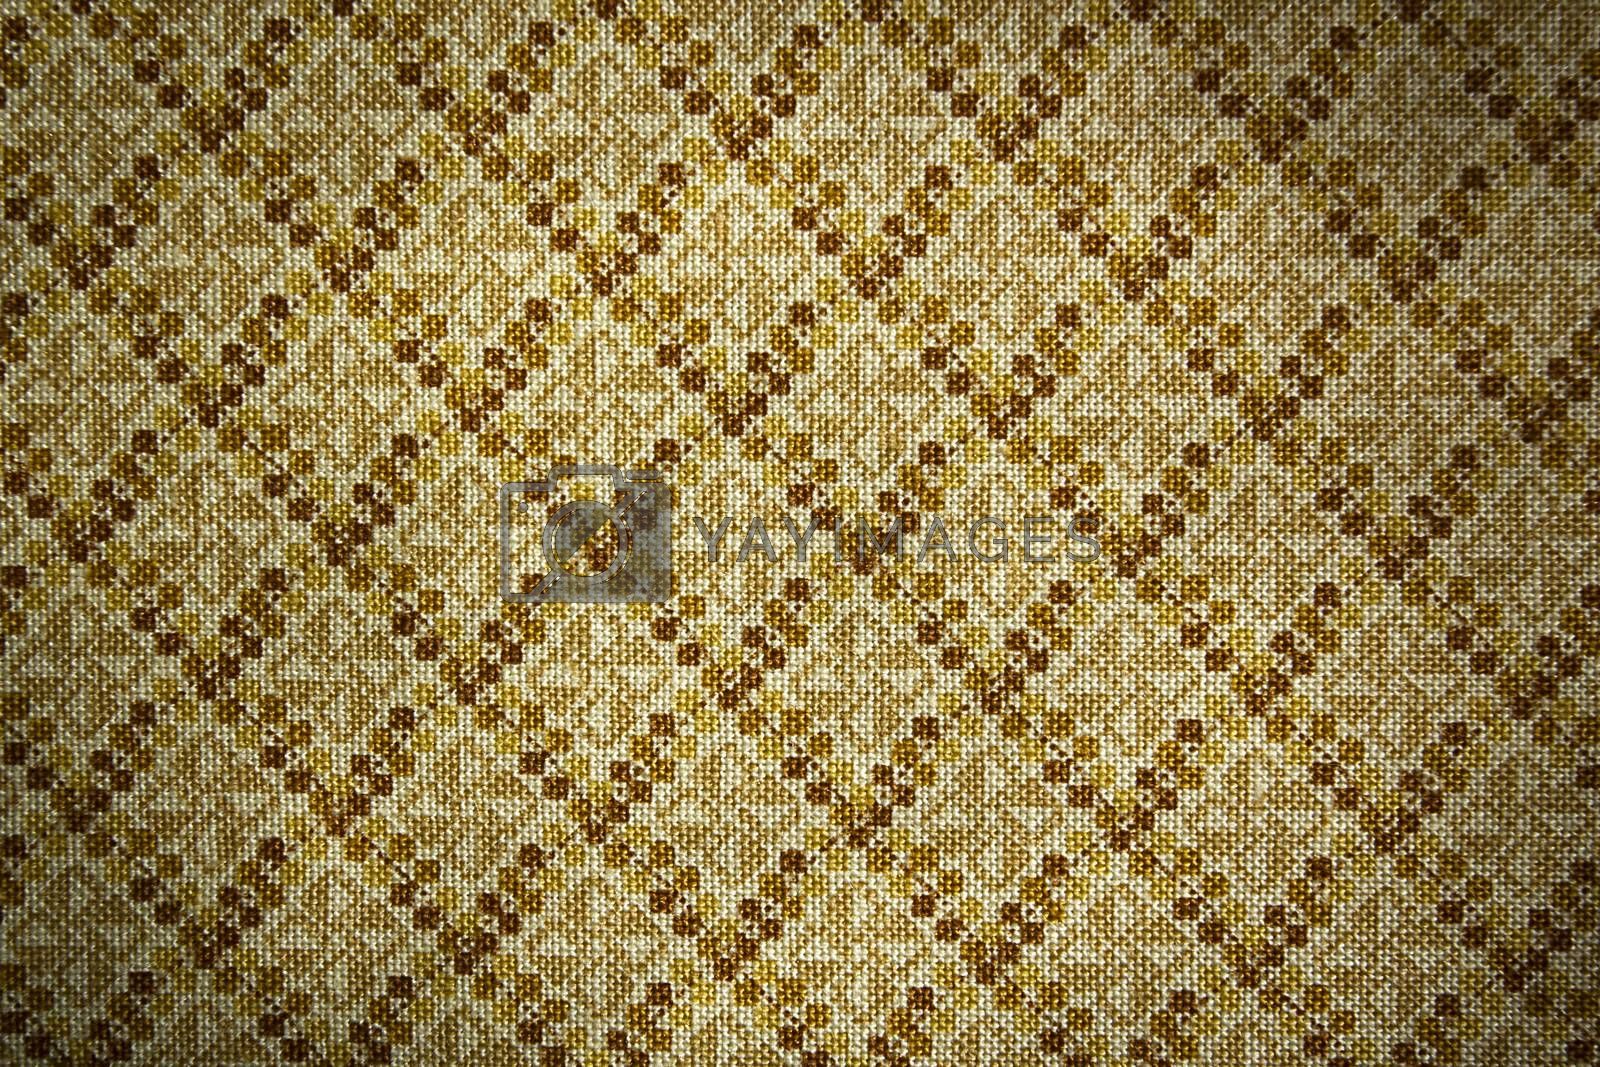 Fabric with geometric pattern as a background